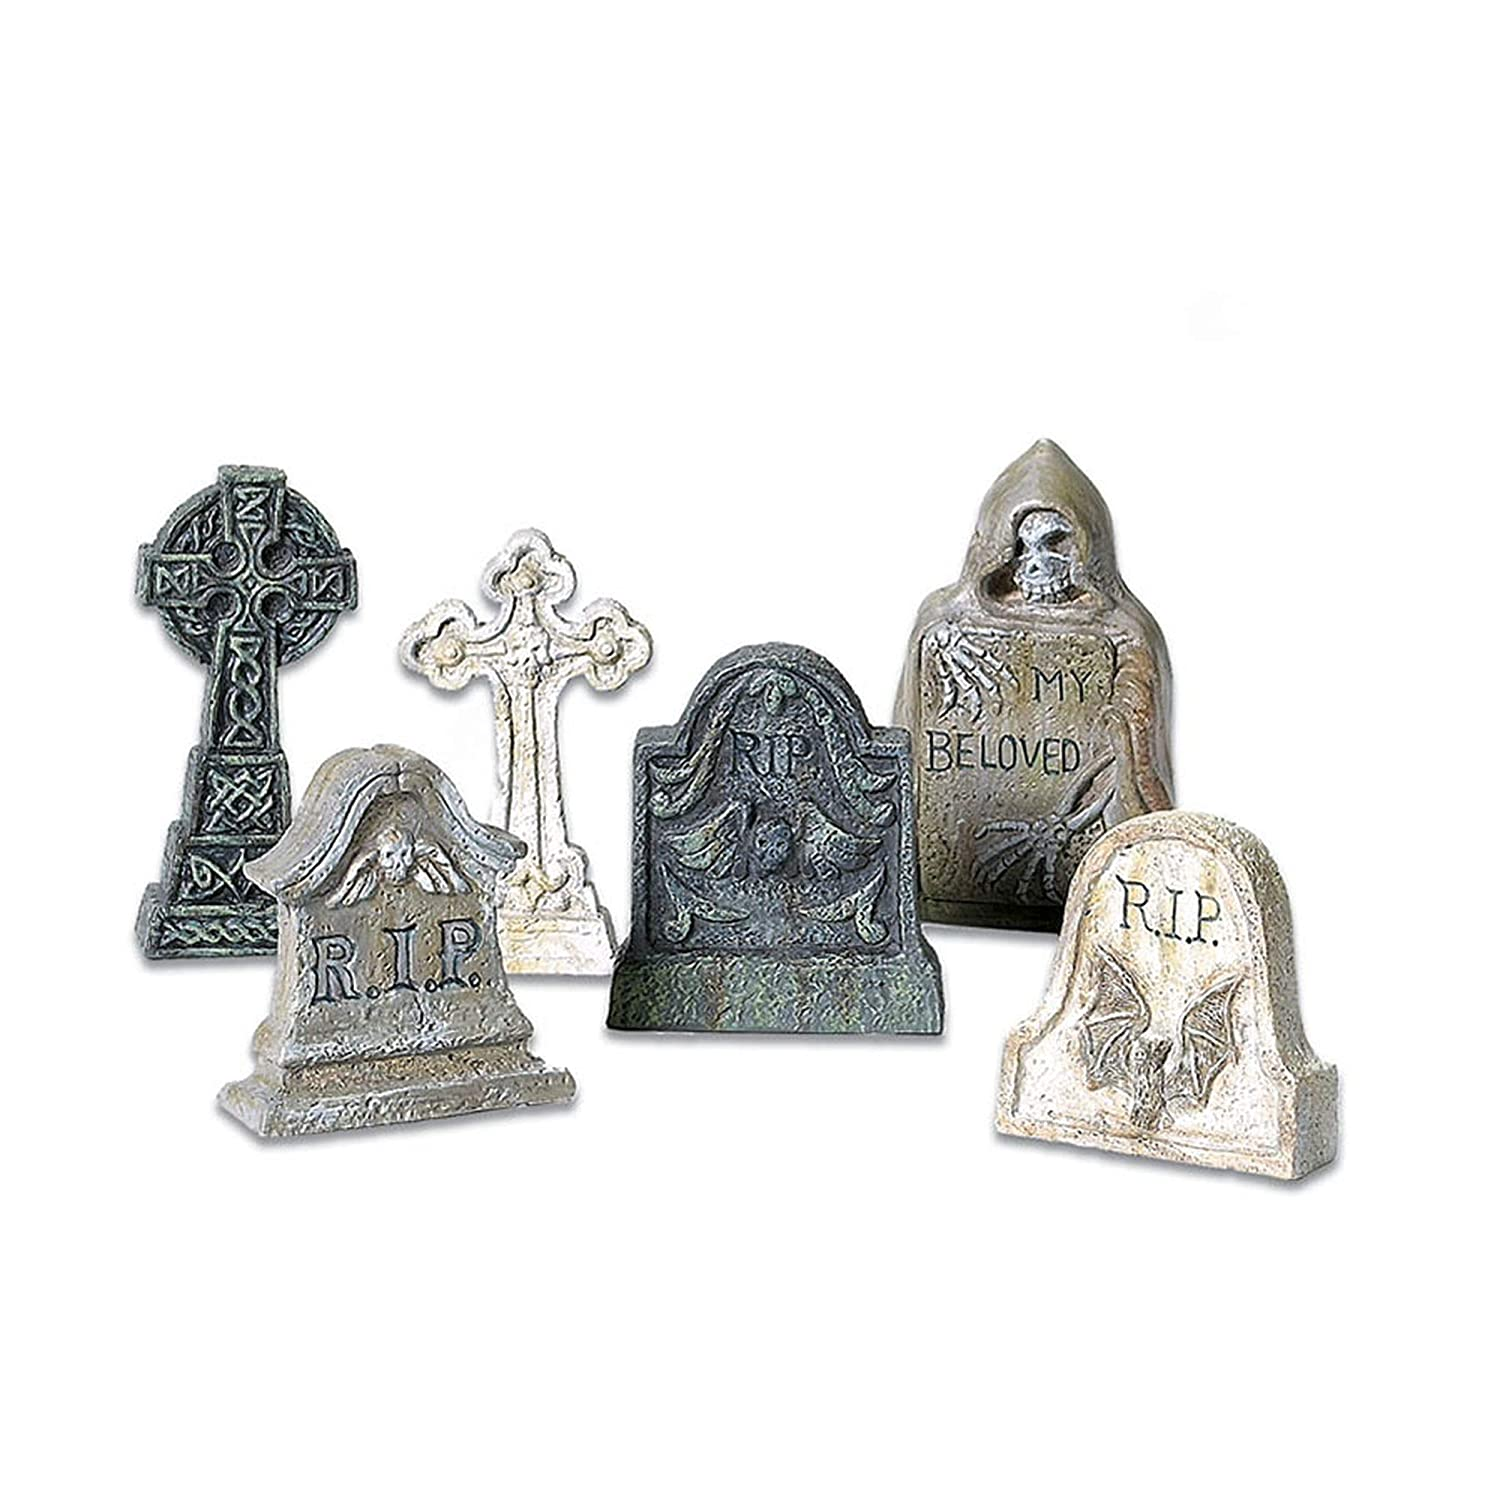 Department 56 Accessories for Villages Halloween Tombstones Accessory Figurine (Set of 6) (56.53065)